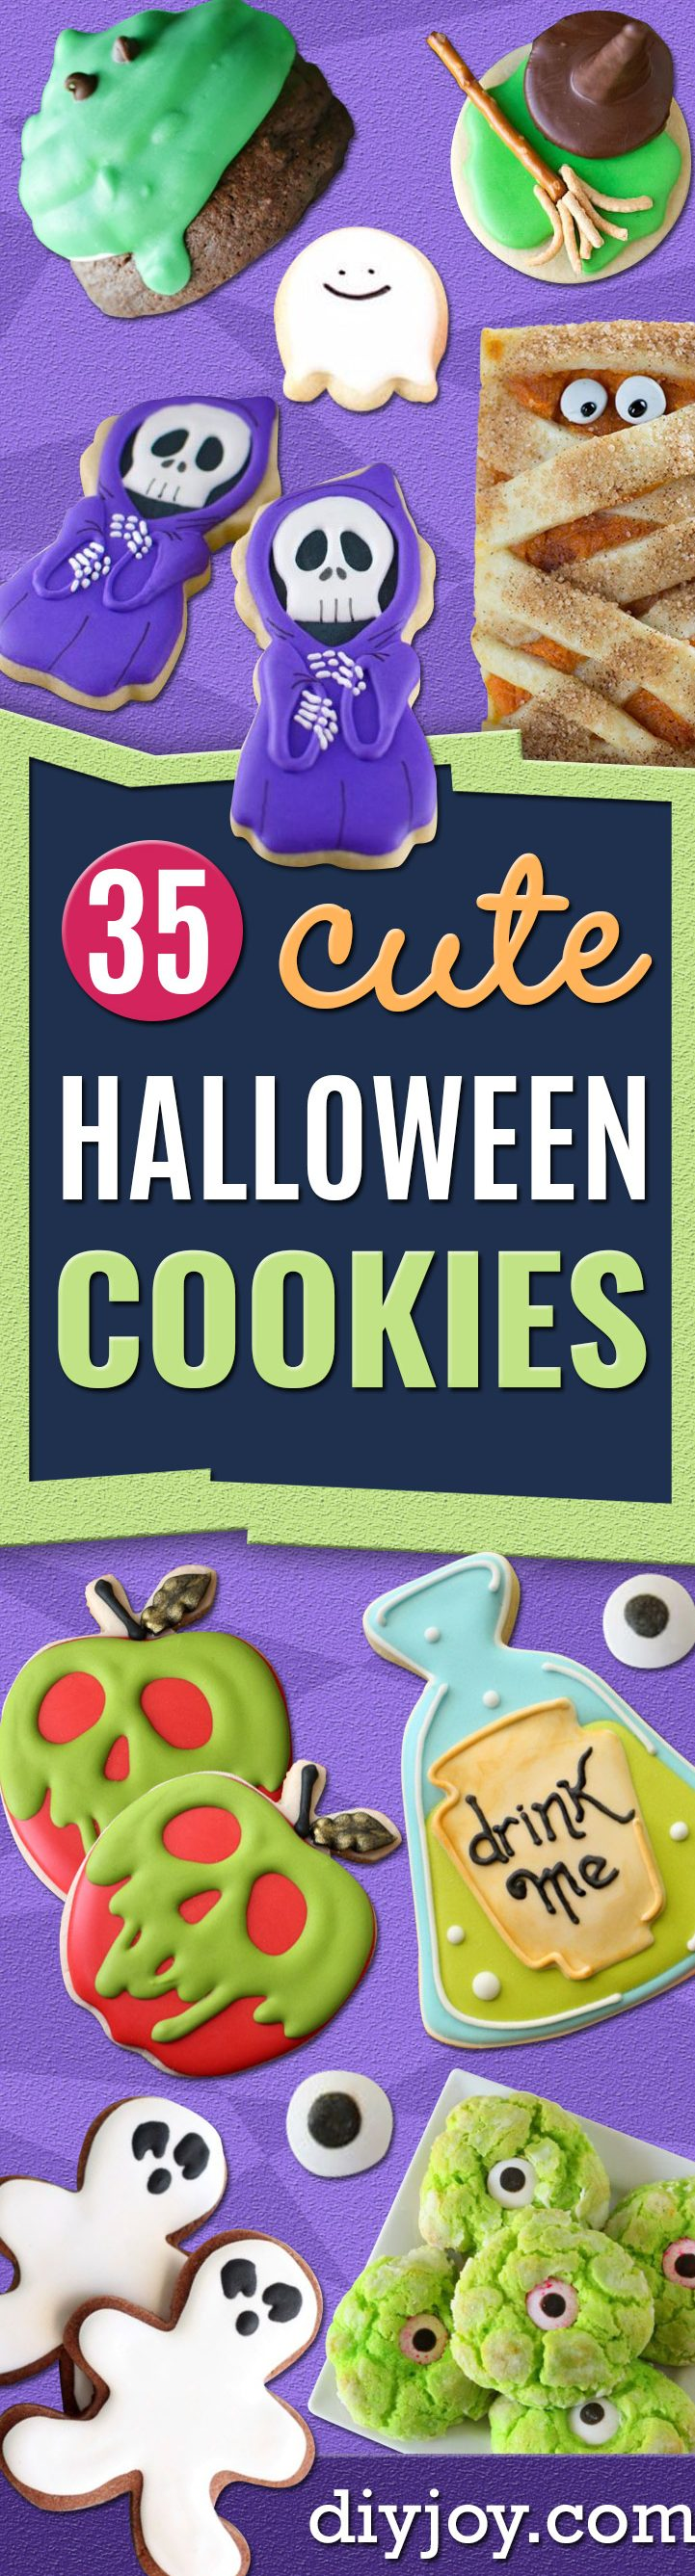 Cute Halloween Cookies - Easy Recipes and Cookie Tutorials for Making Quick Halloween Treats - Spooky DIY Decorated Ghosts, Pumpkins, Bats, No Bake, Spiders and Spiderwebs, Tombstones and Healthy Options, Kids and Teens Cookies for School